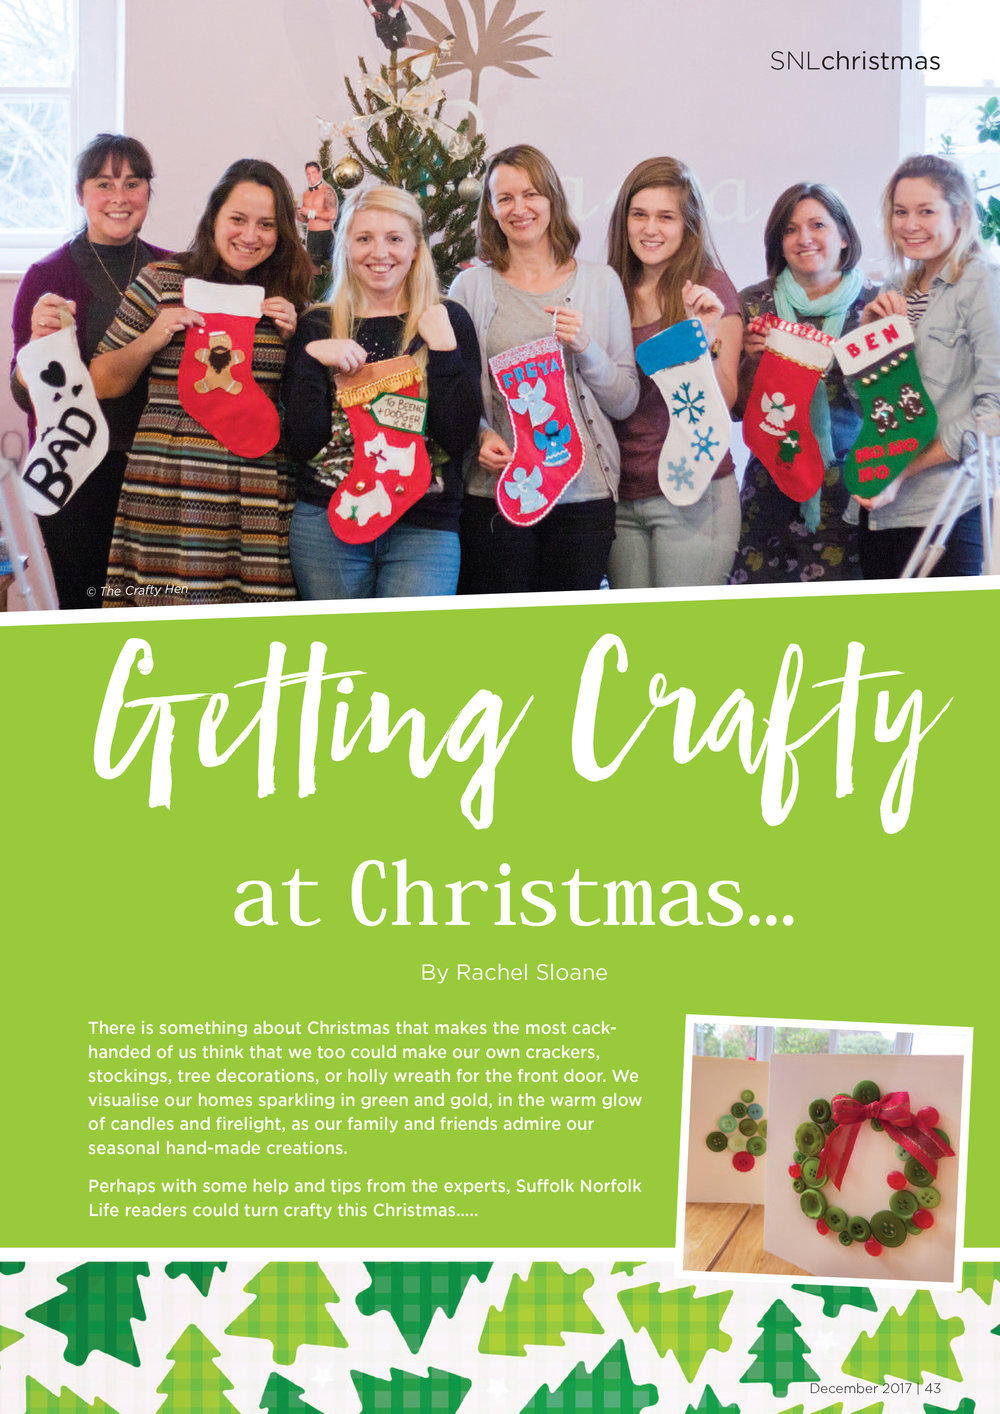 Suffolk Norfolk Life - Getting Crafty this Christmas - Dec 17 1.jpg